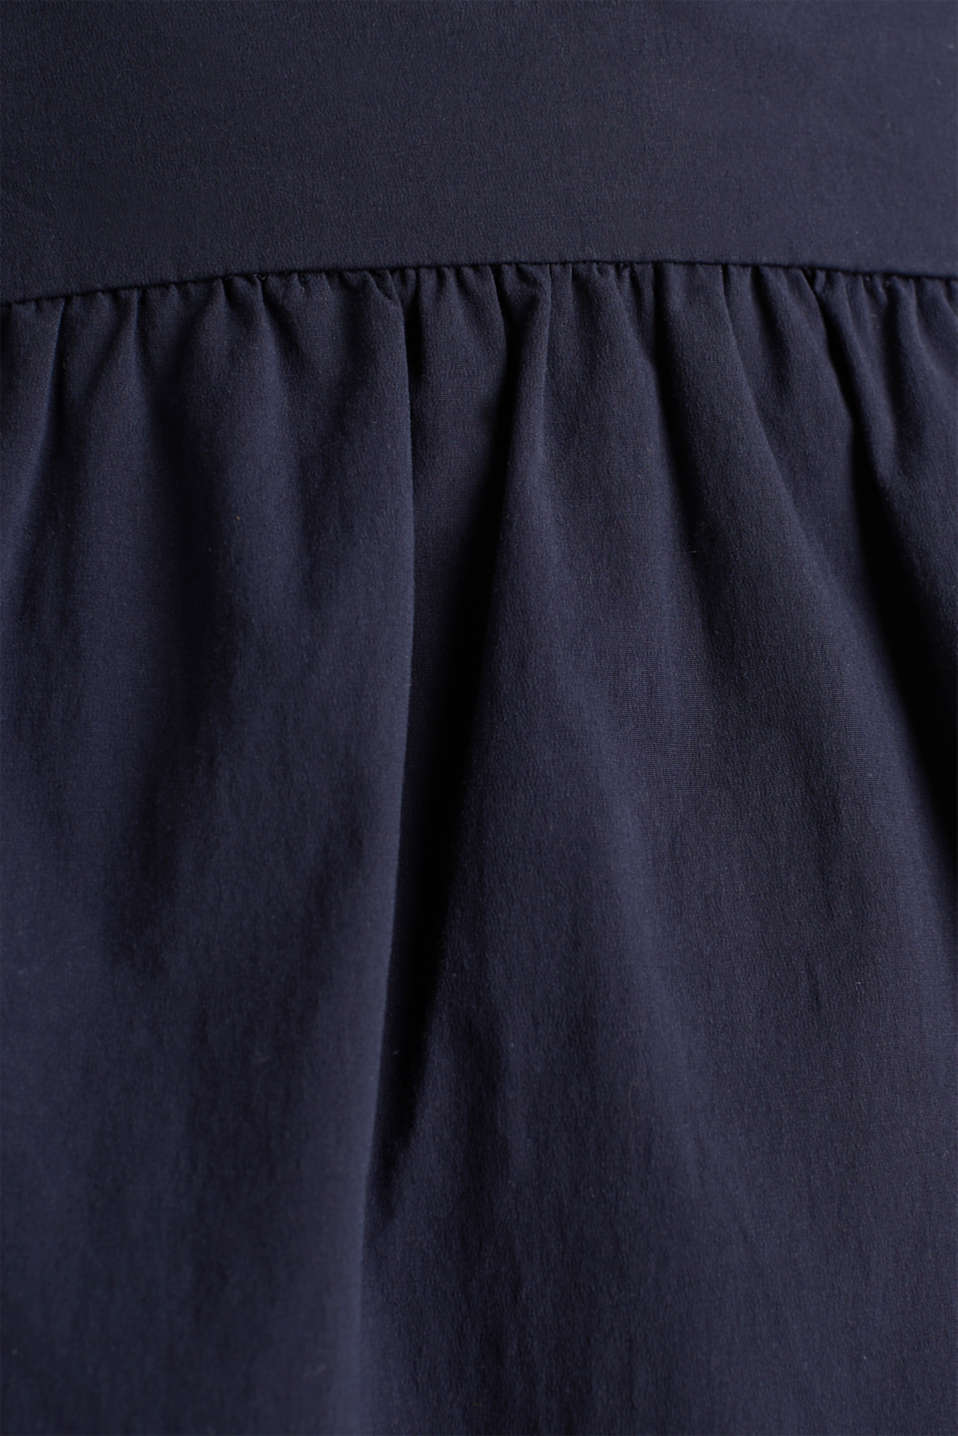 Flared poplin skirt with a belt, NAVY, detail image number 3